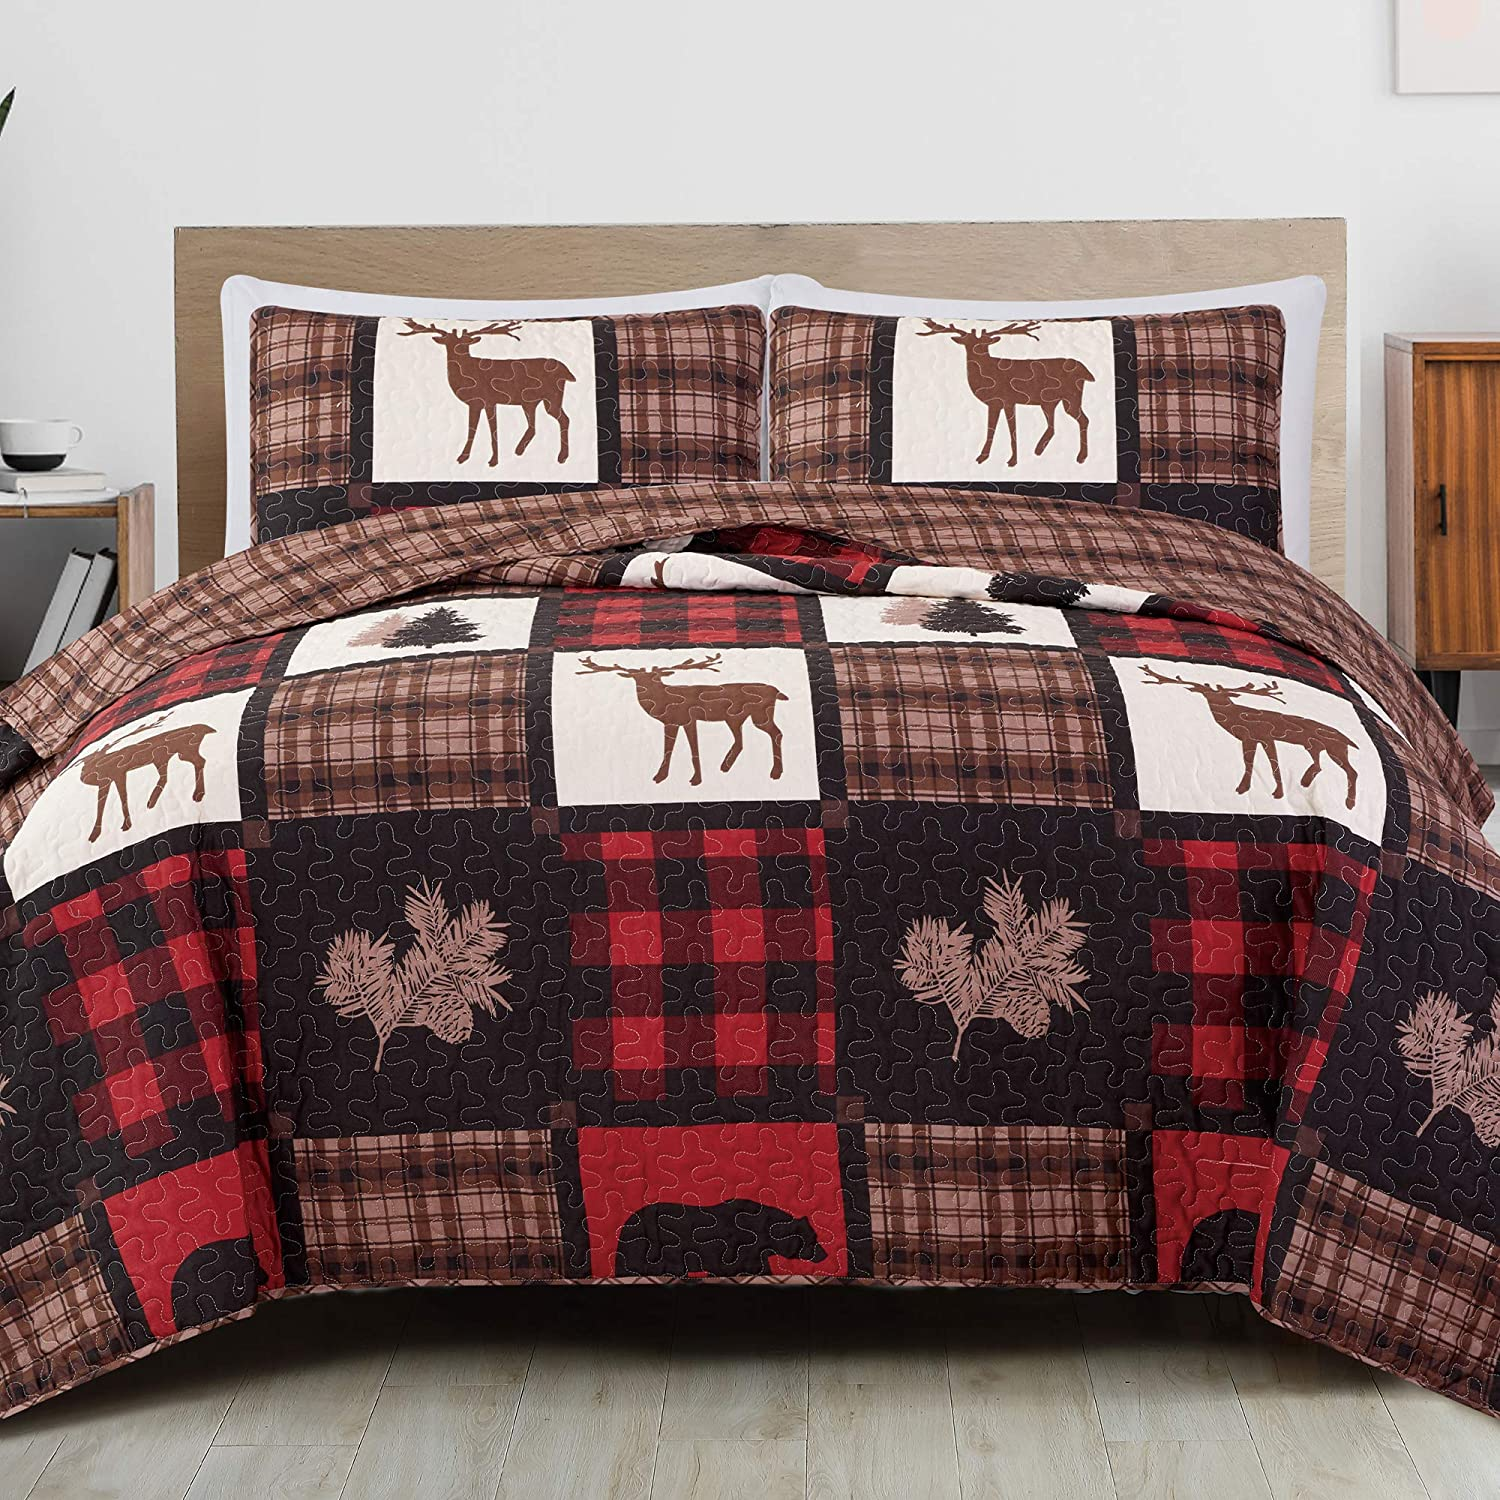 Great Bay Home Lodge Bedspread King Size Quilt with 2 Shams. Cabin 3-Piece Reversible All Season Quilt Set. Rustic Quilt Coverlet Bed Set. Stonehurst Collection. (Red/Black)